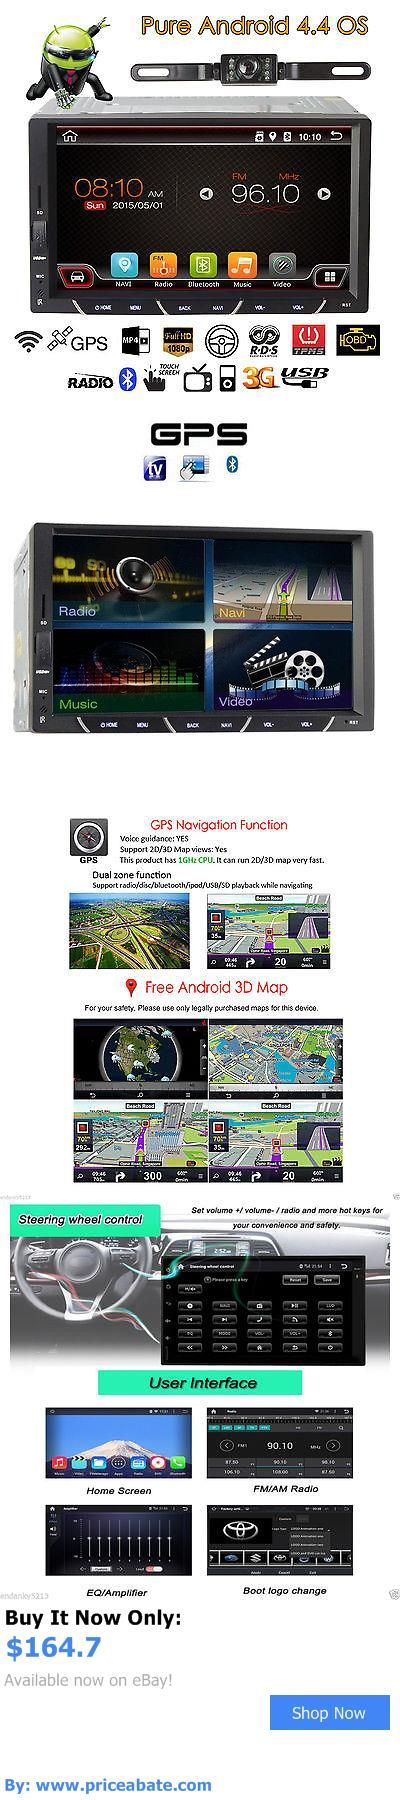 Vehicle Electronics And GPS: Android 7Double Din 3G Wifi Car Gps Navi Player Stereo Ipod Usb Radio+Camera BUY IT NOW ONLY: $164.7 #priceabateVehicleElectronicsAndGPS OR #priceabate